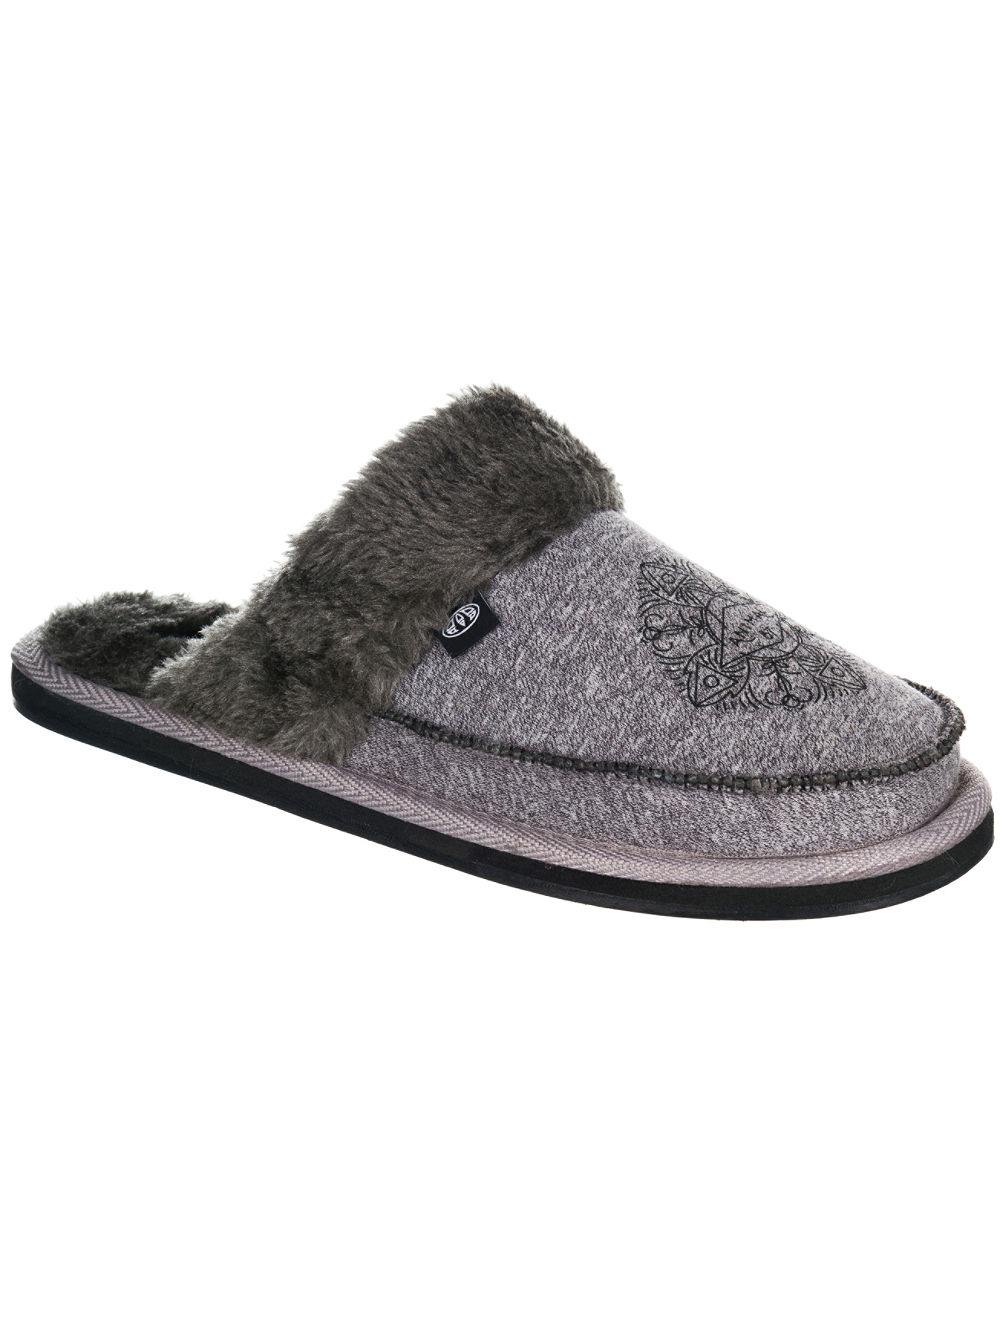 Bessie Slippers Women